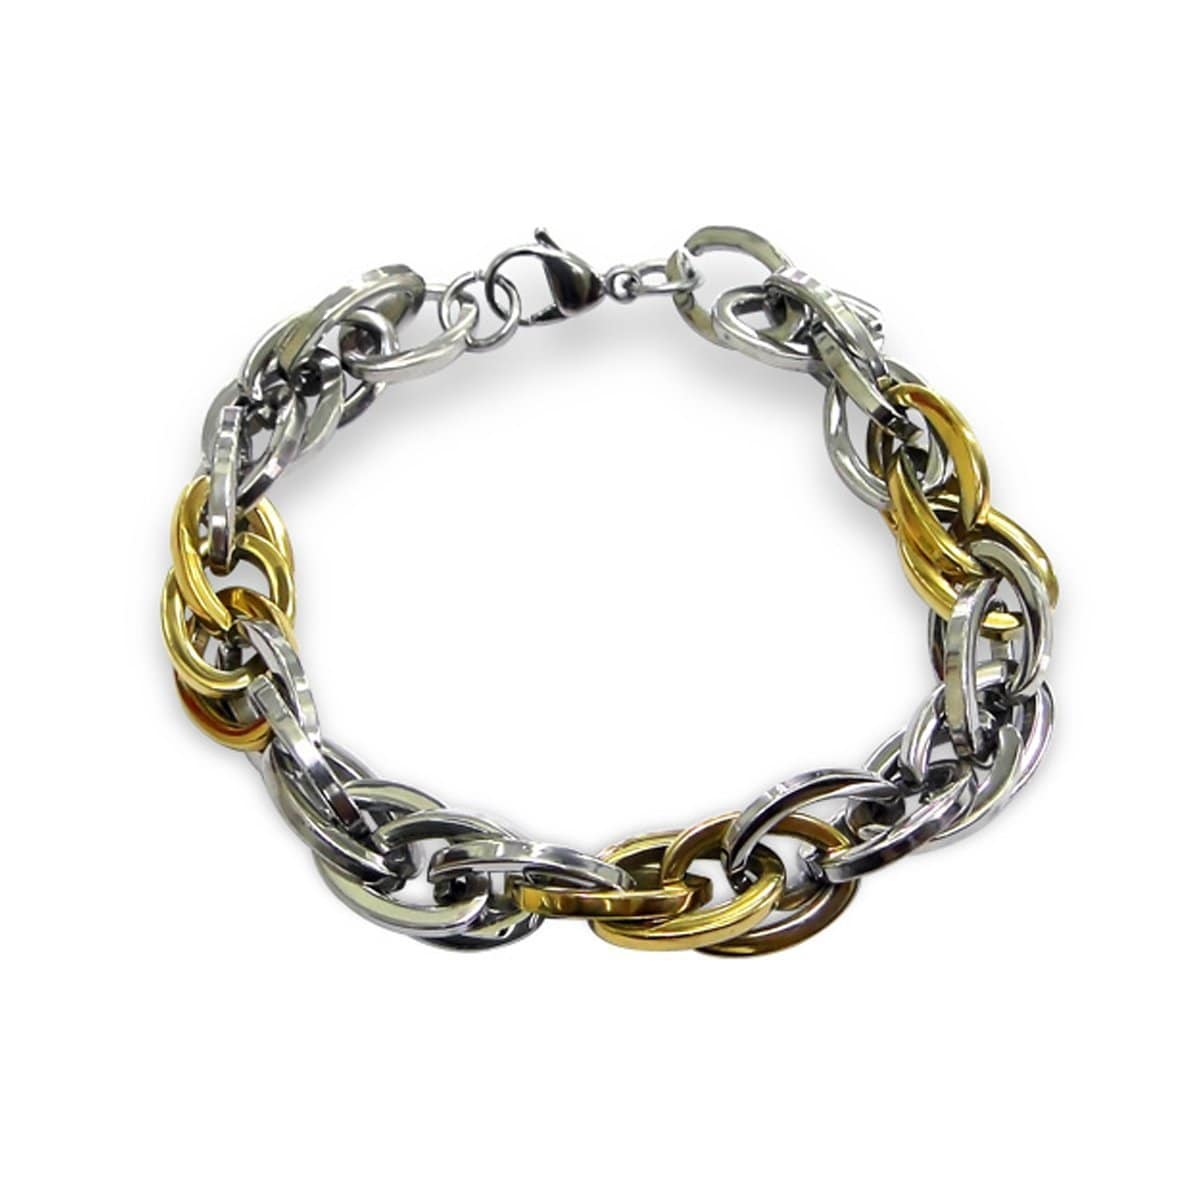 22 CM Mens Stainless Steel Chain Bracelet